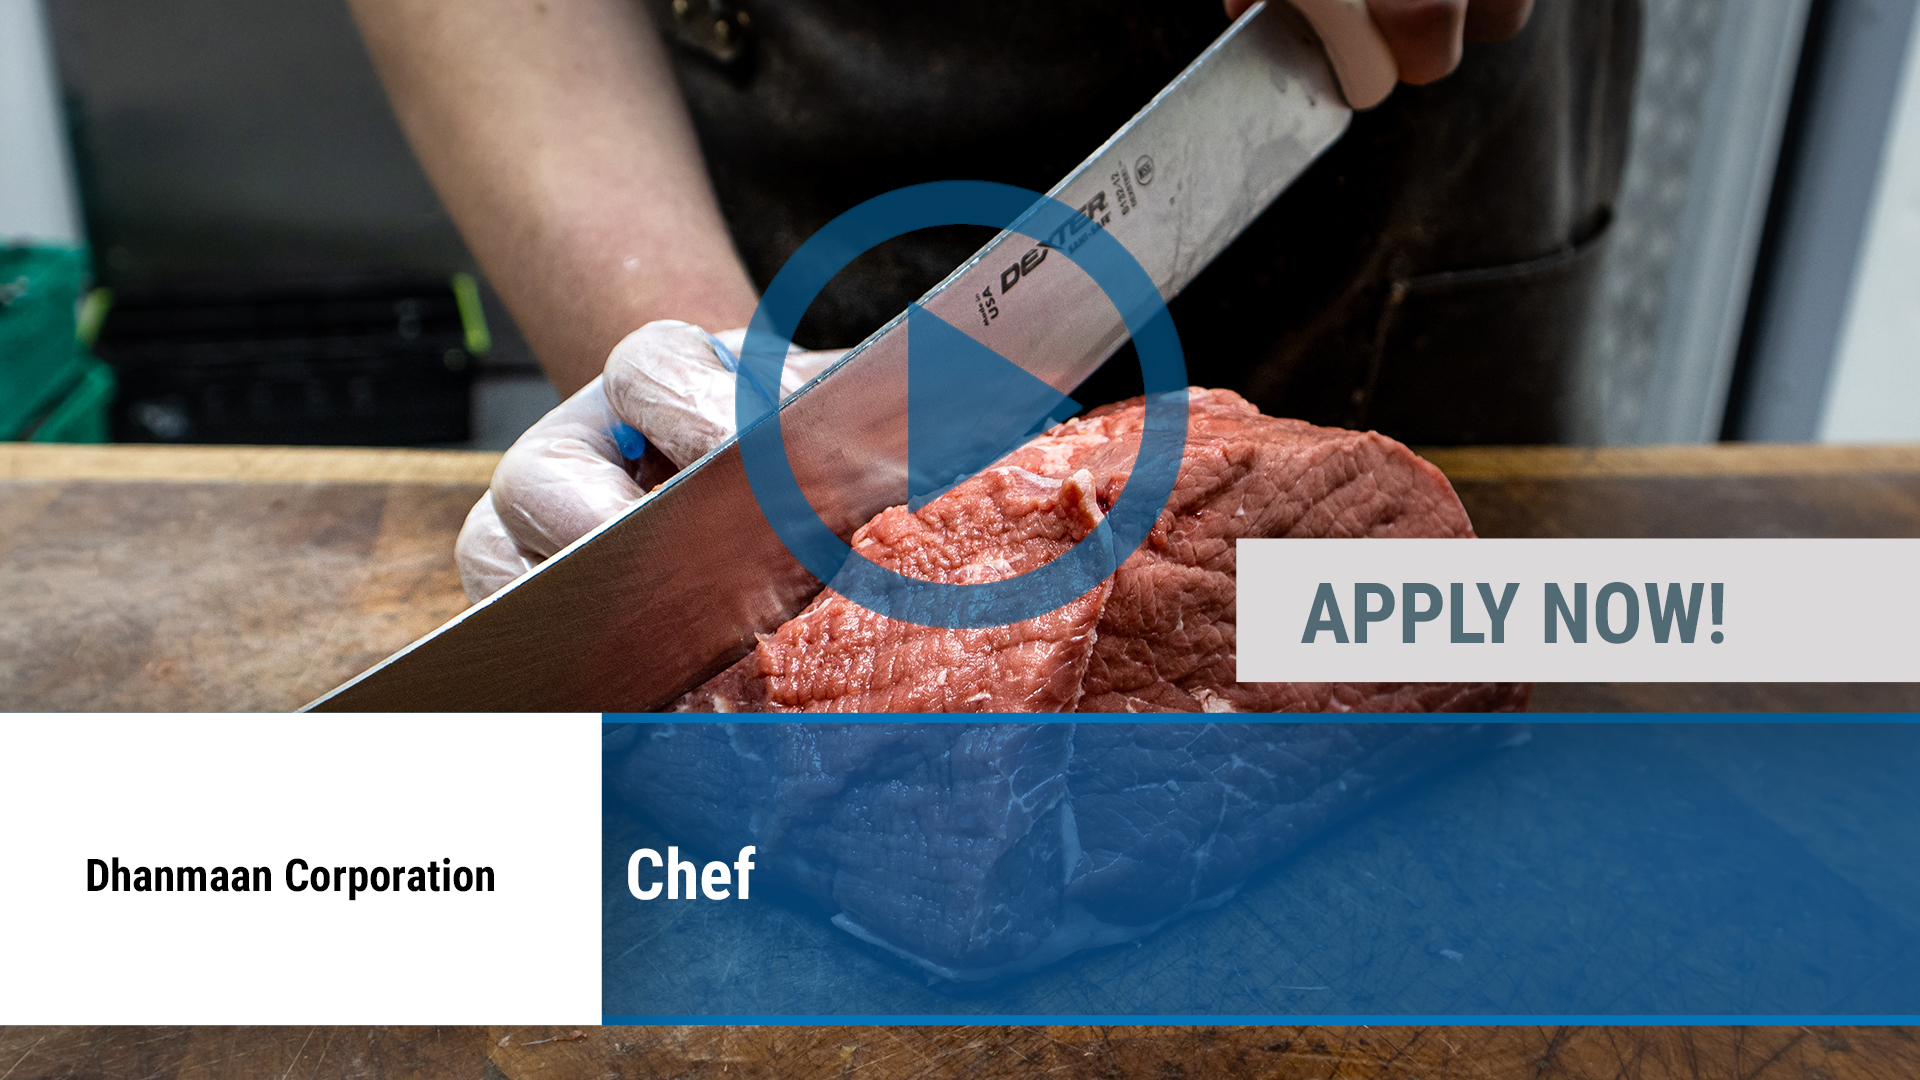 Watch our careers video for available job opening Chef in Irving, TX